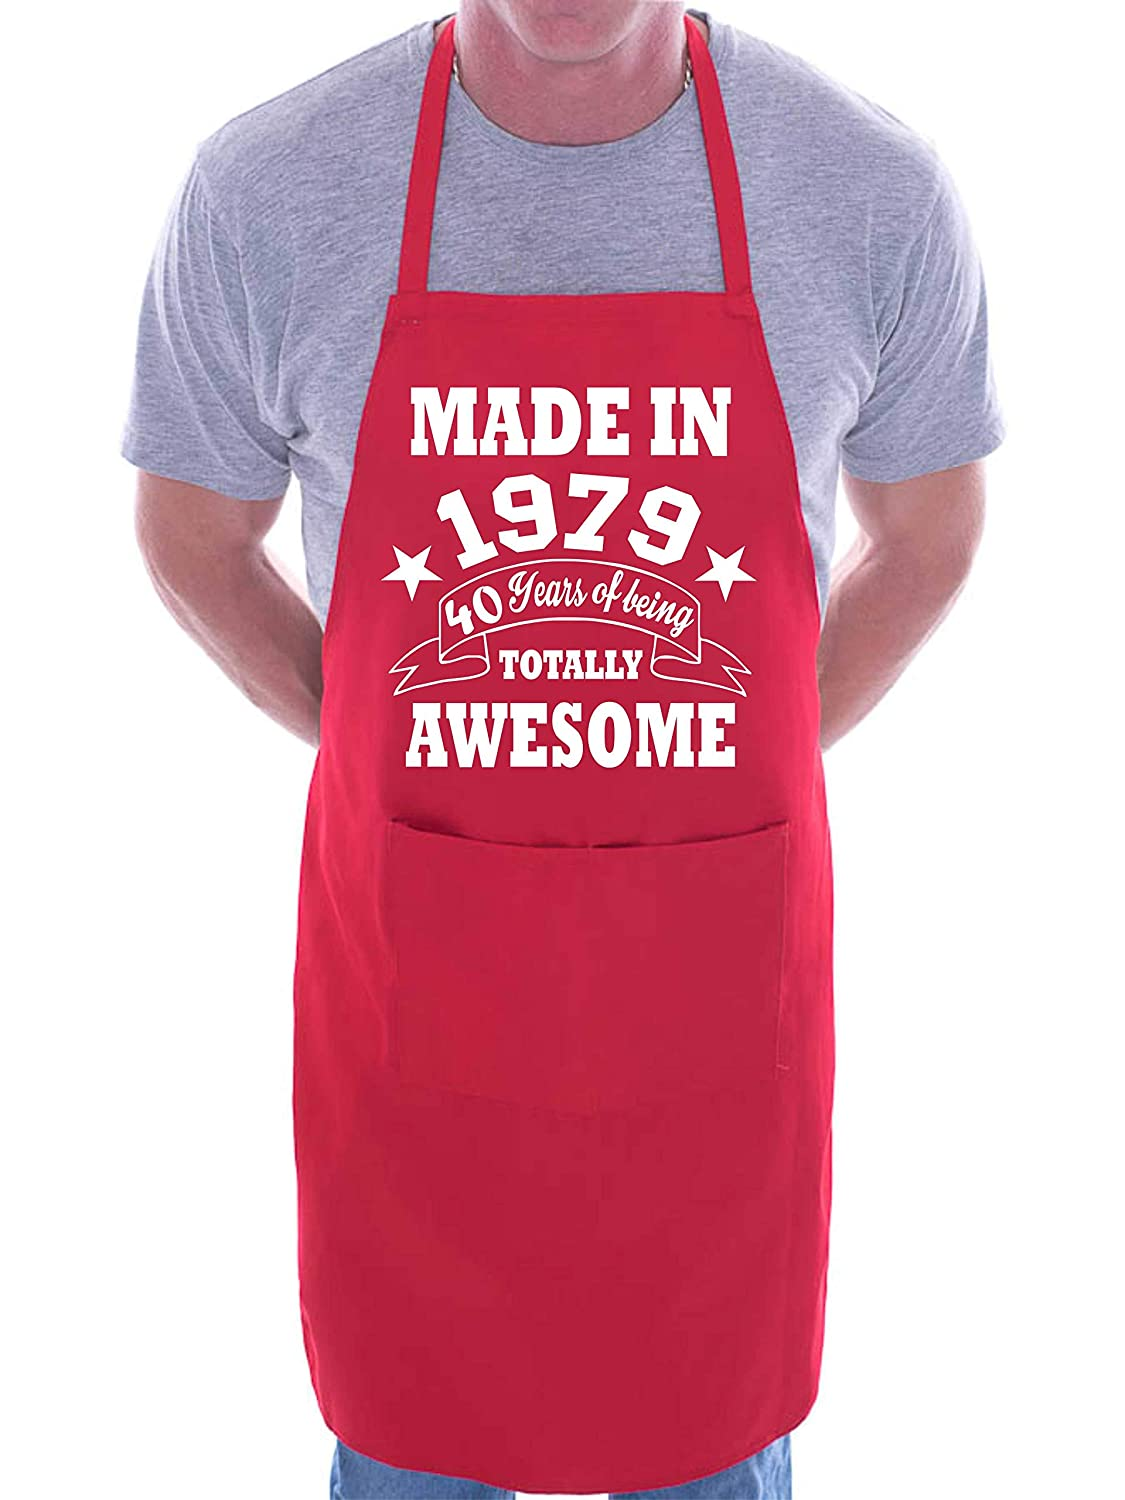 40th Birthday Made In 1979 BBQ Cooking Funny Novelty Apron